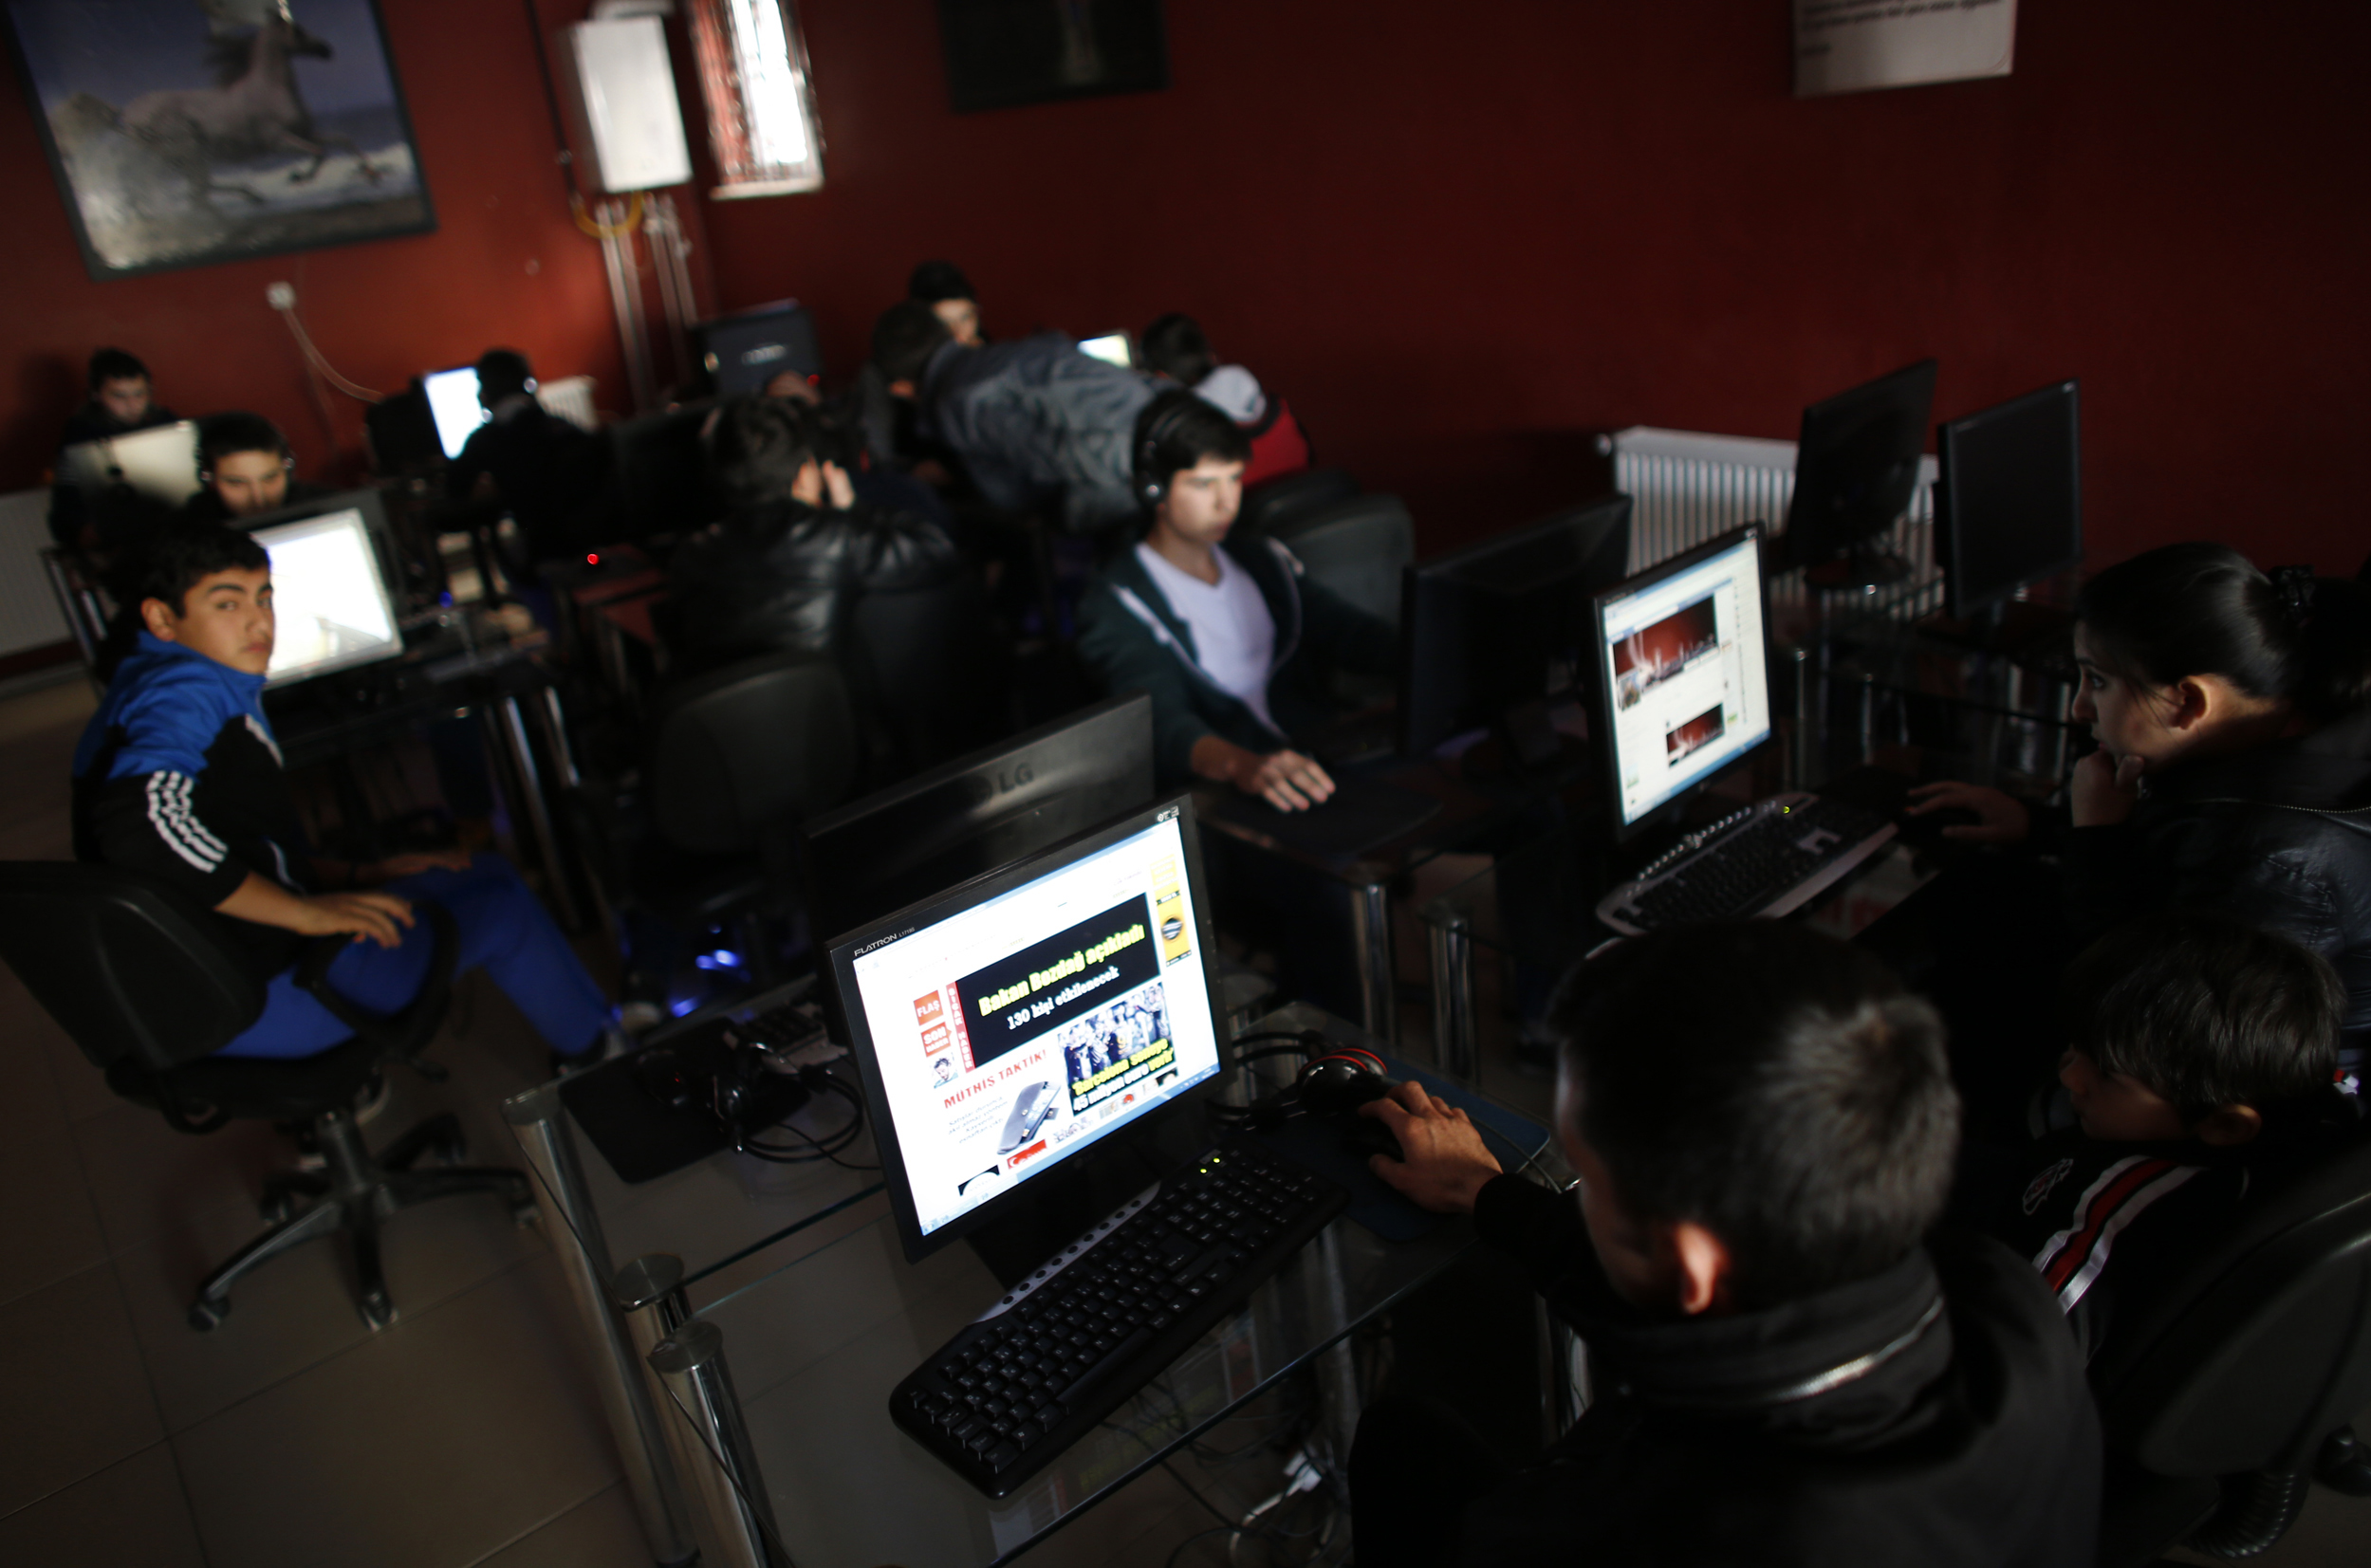 Internet cafes bustle in Ankara, where Turkey's parliament approved a crackdown on online access.